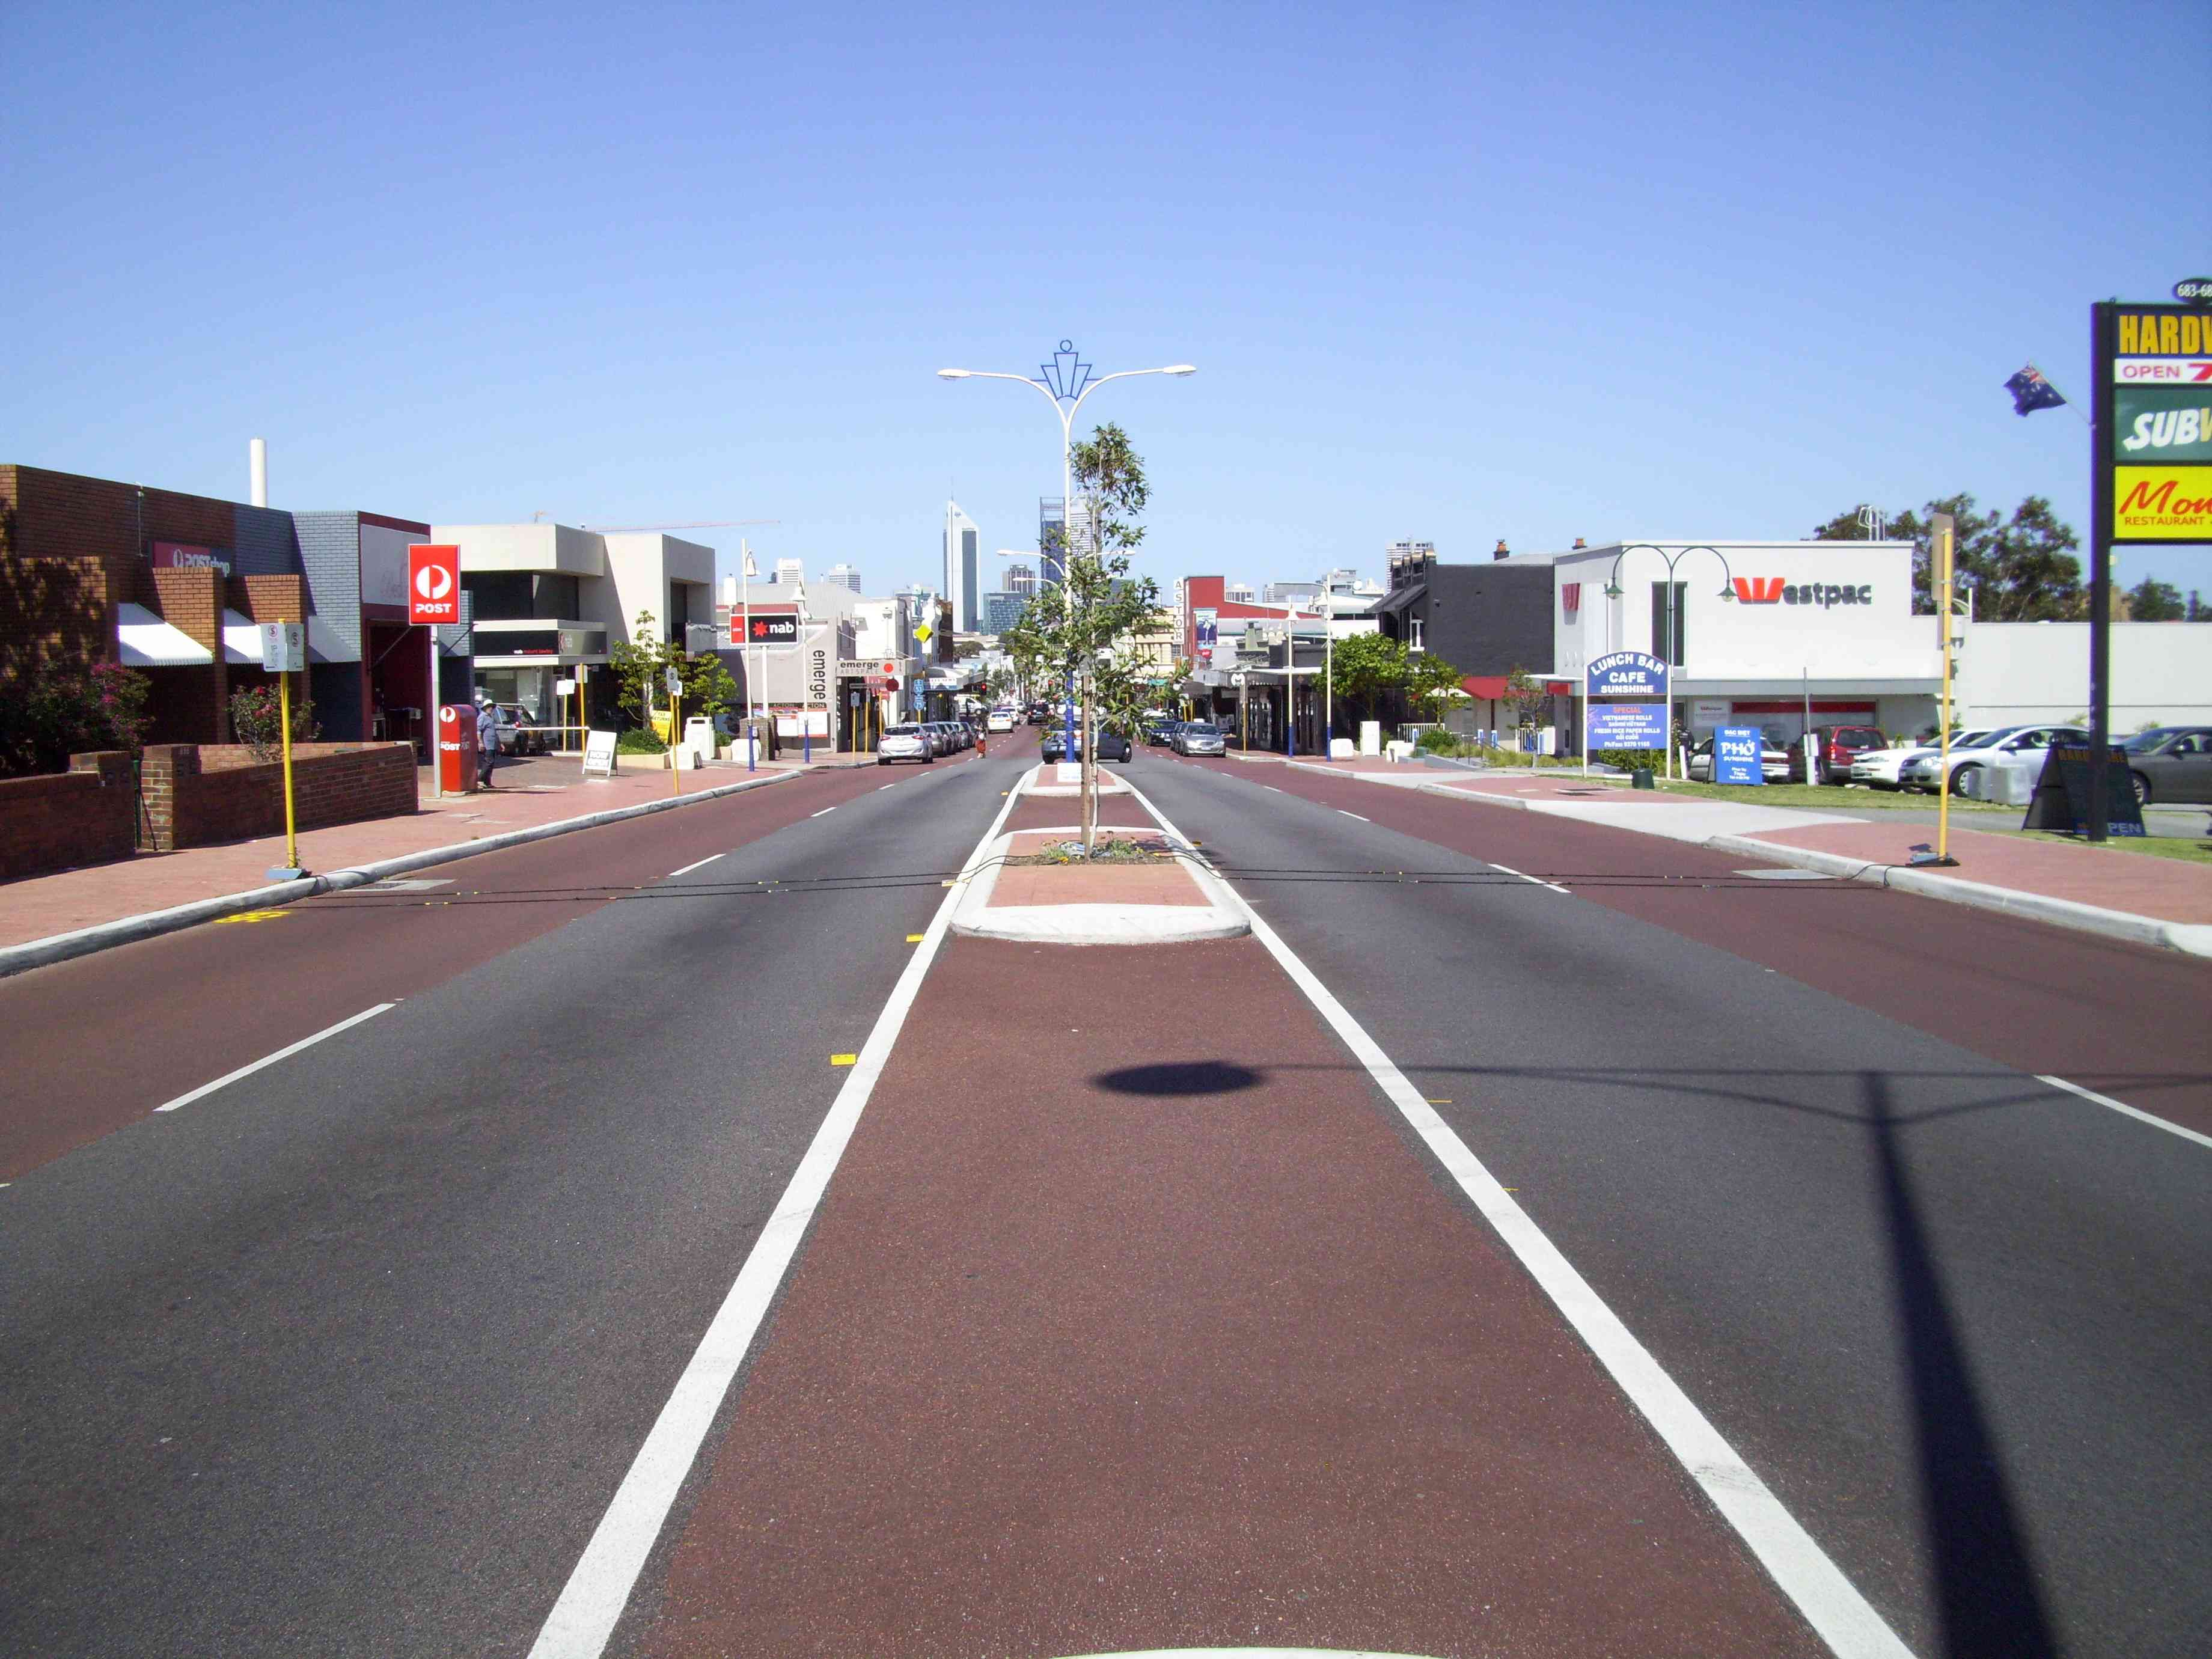 Bossman is located on Beaufort St., Mount Lawley, Perth